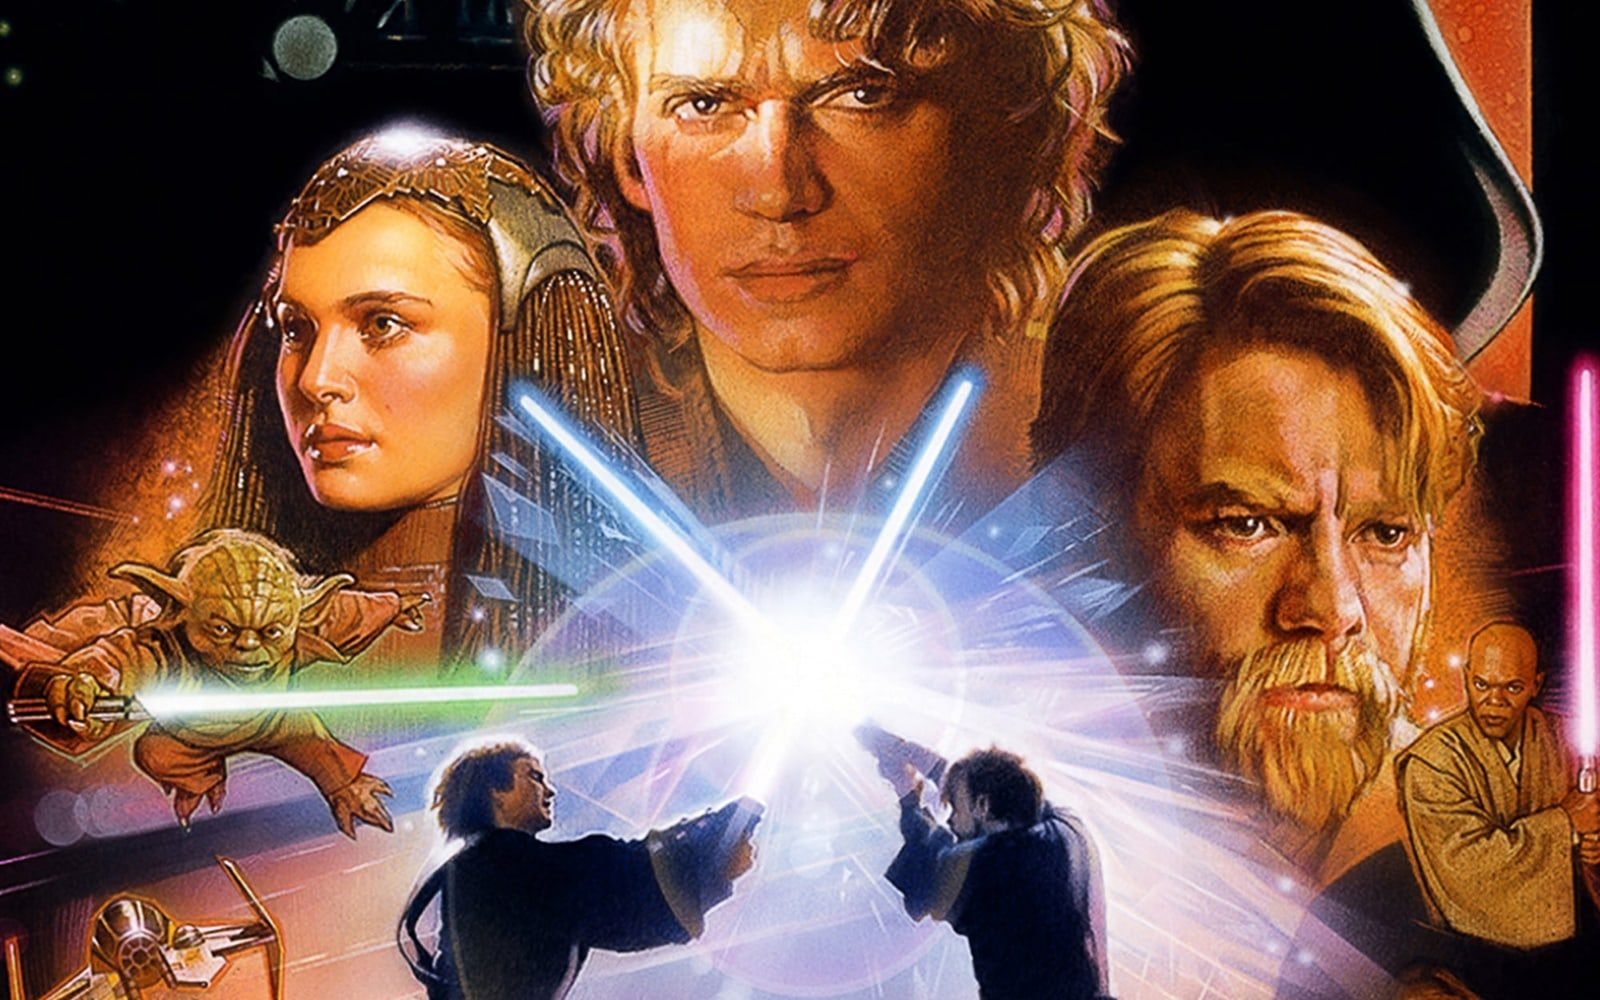 Star Wars Episode Iii Revenge Of The Sith By George Lucas Review Opus